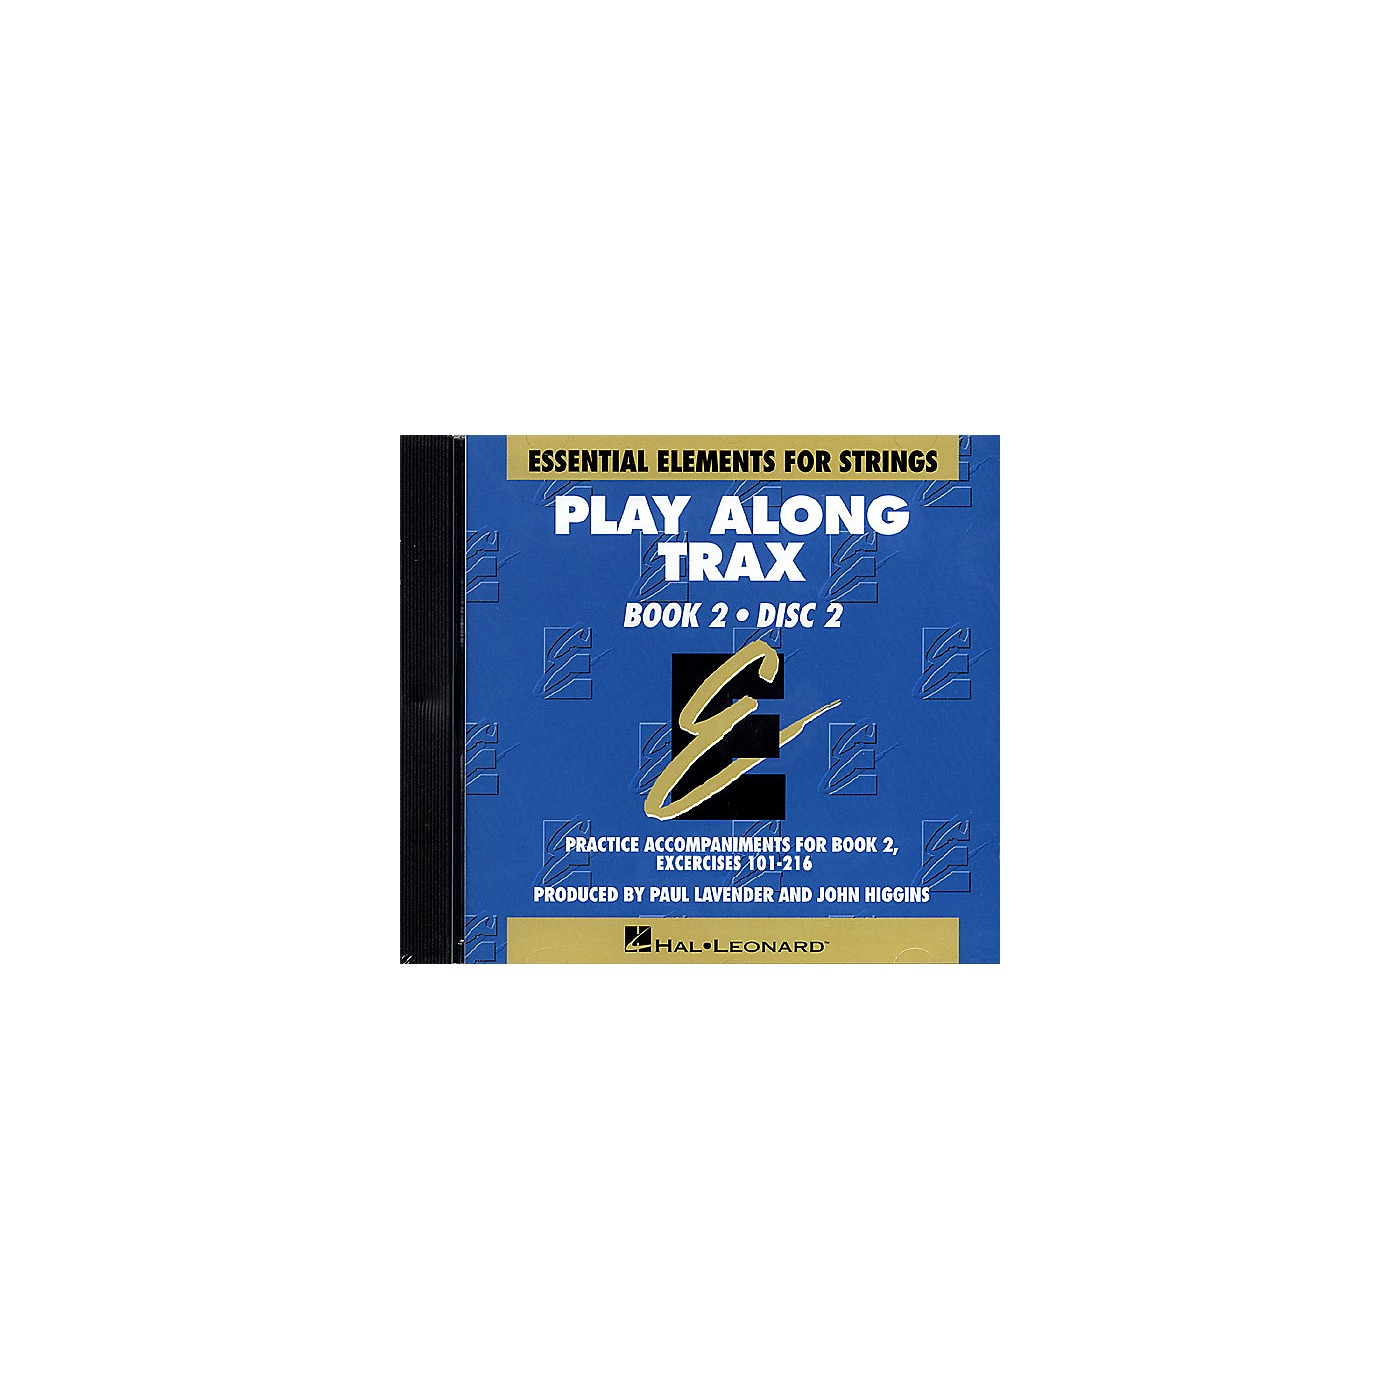 Hal Leonard Essential Elements for Strings Play-Along Trax - Book 2, Disc 2 Essential Elements CD by John Higgins thumbnail